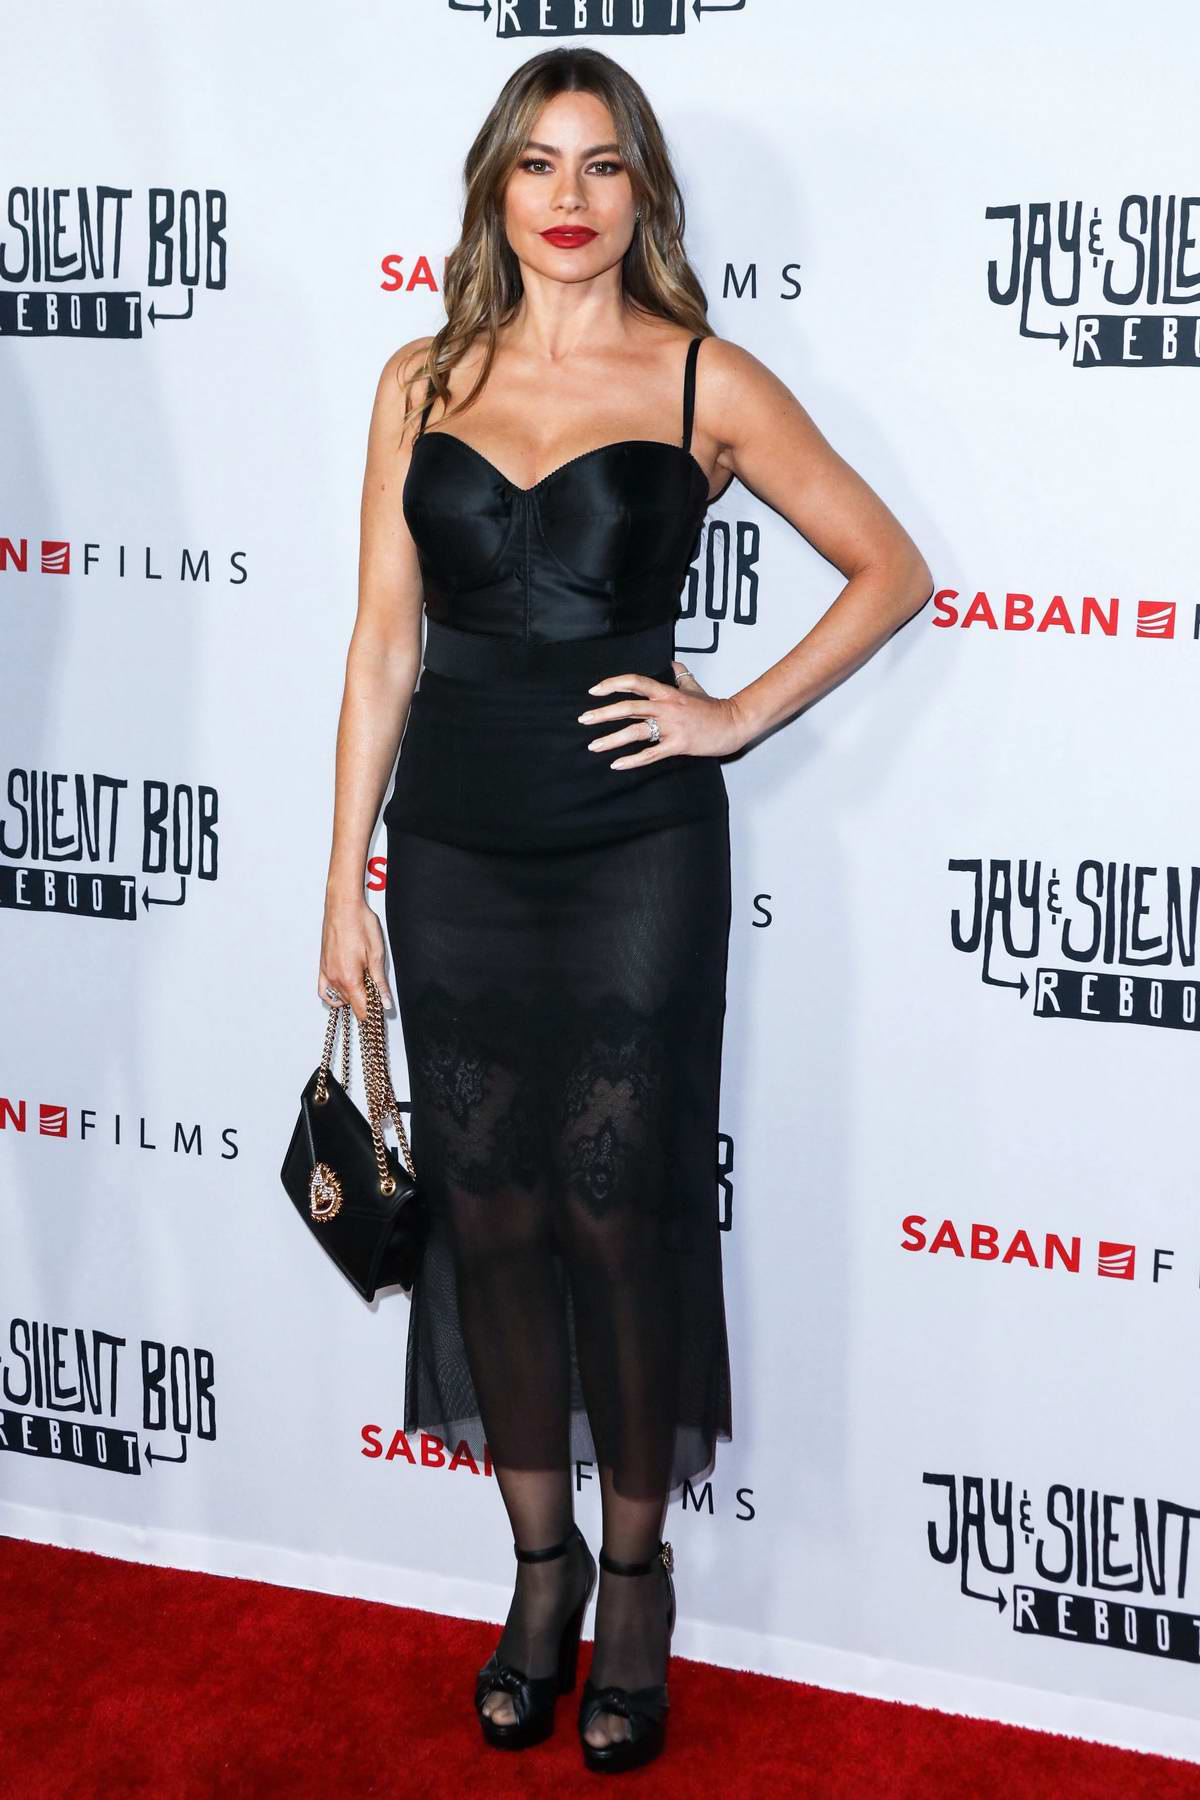 Sofia Vergara attends the screening of 'Jay and Silent Bob Reboot' at TCL Chinese Theatre in Los Angeles